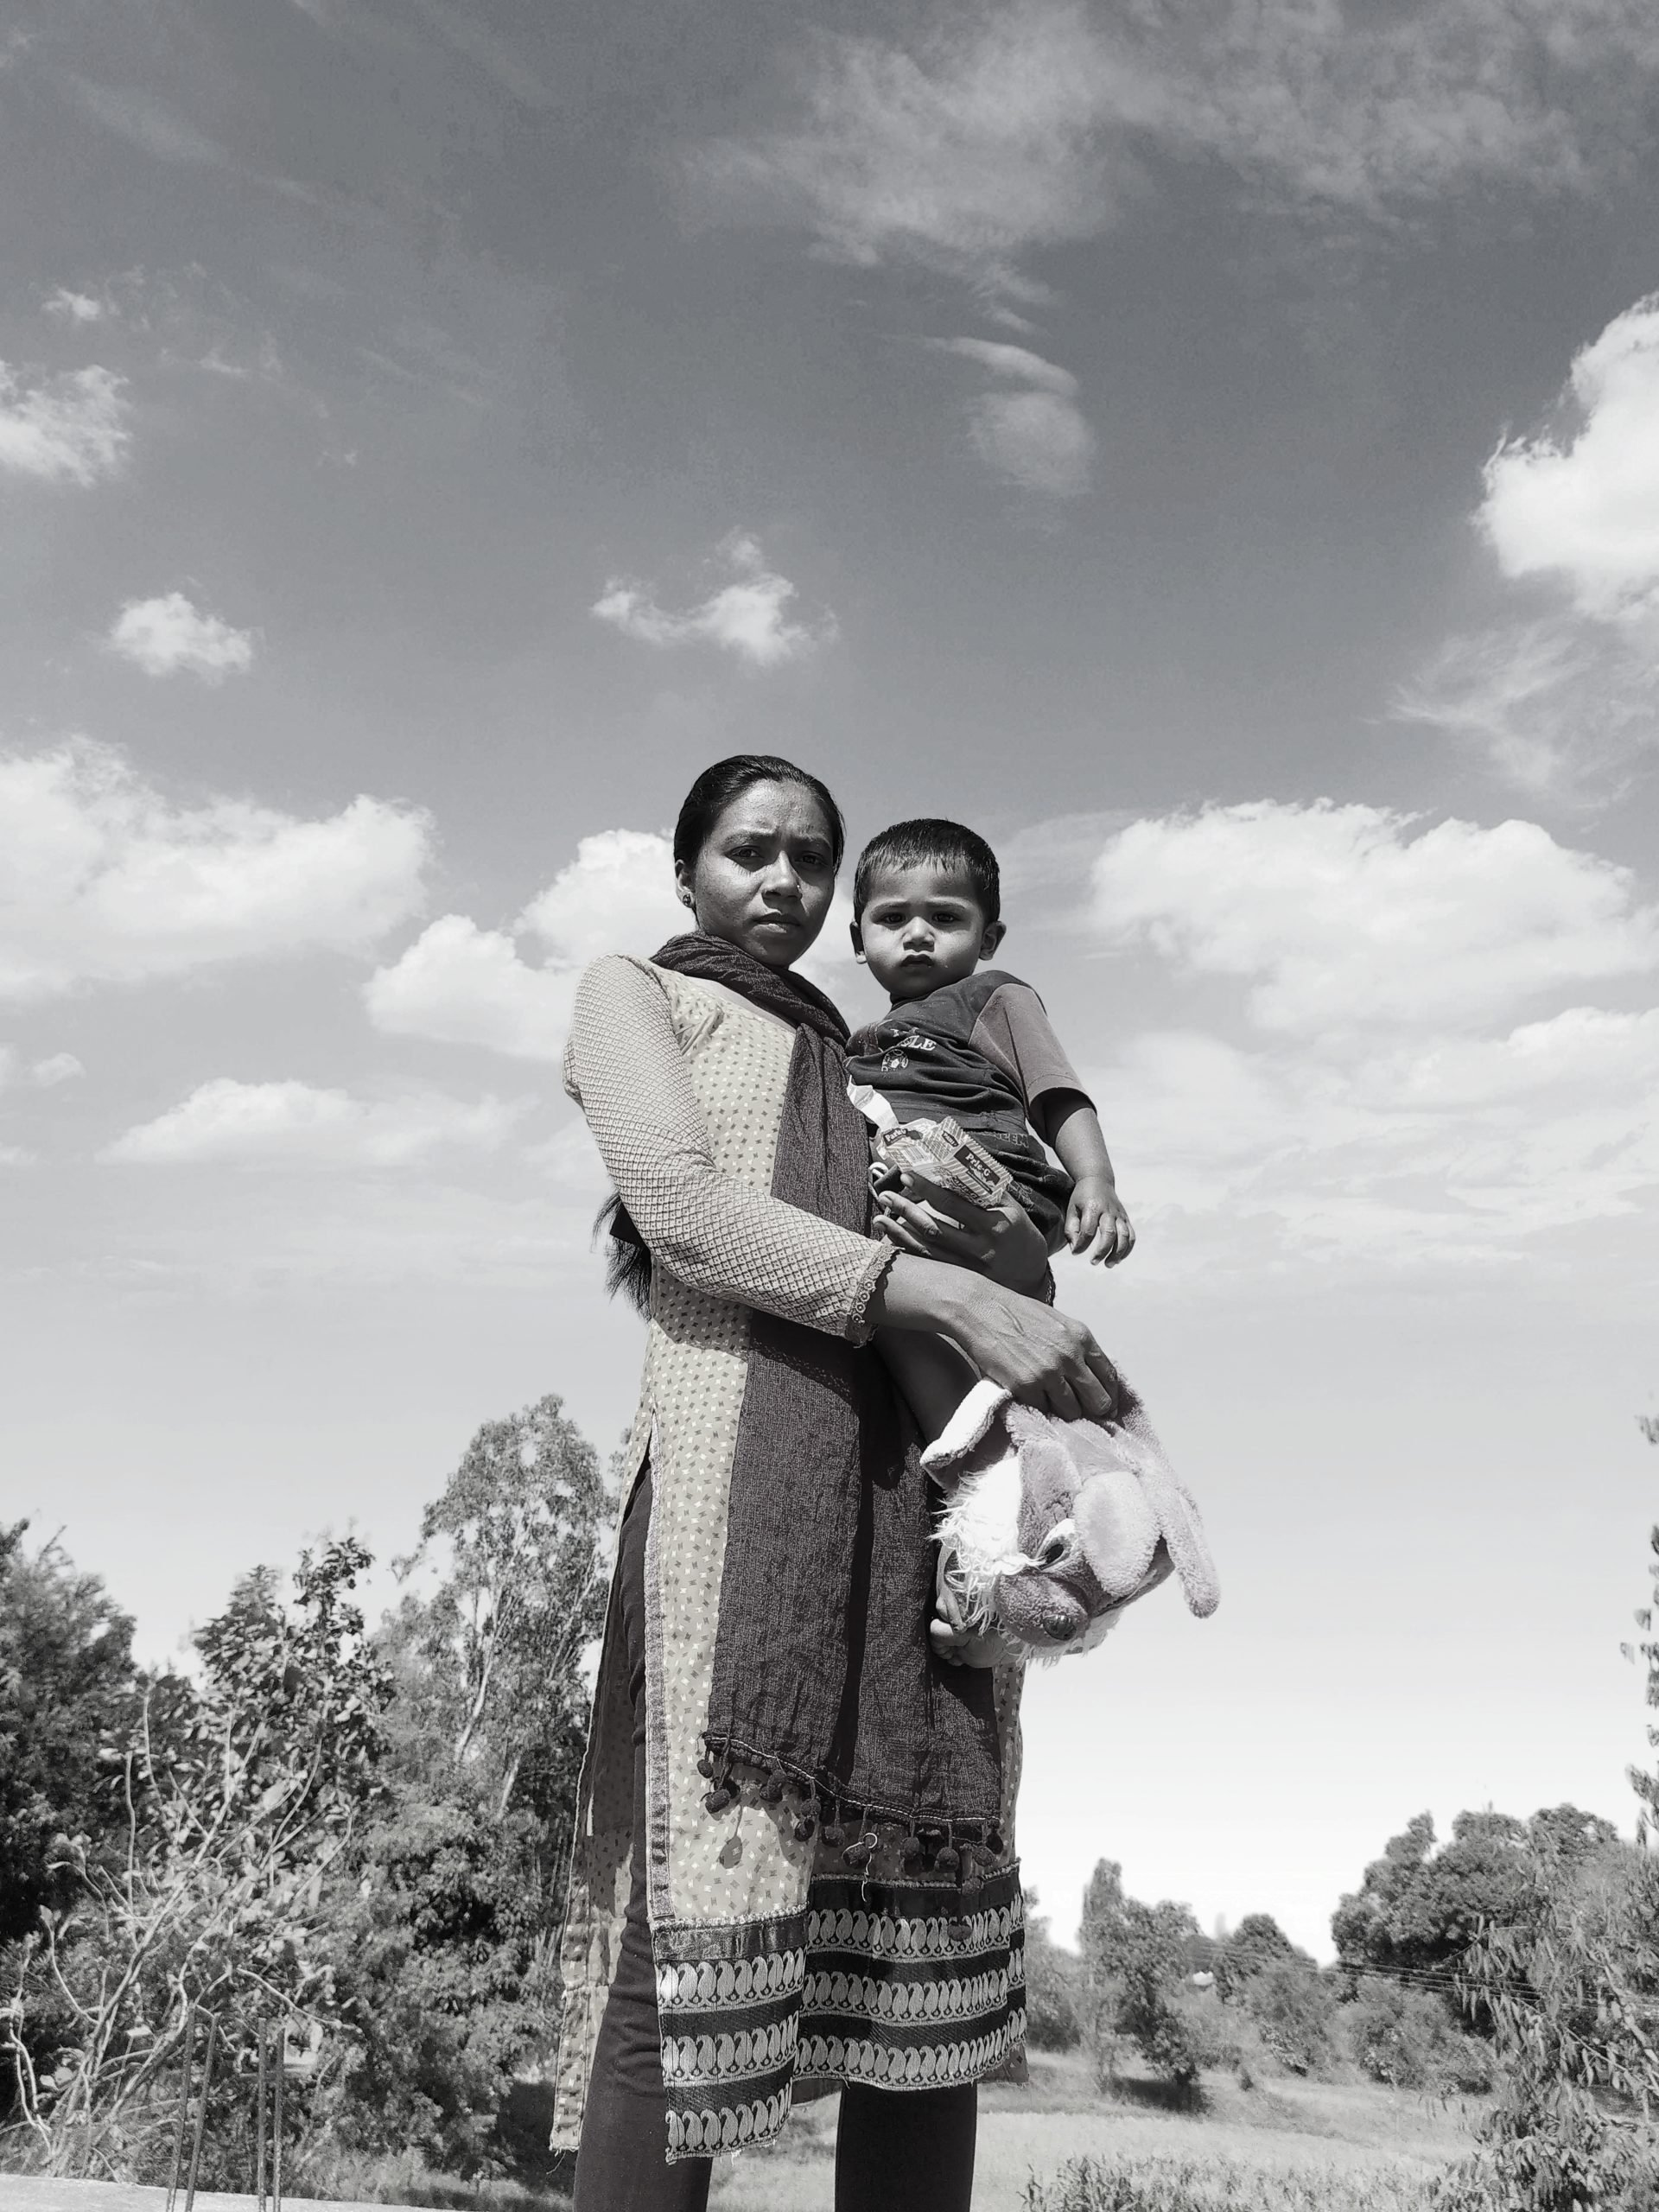 Mother with her child under open sky